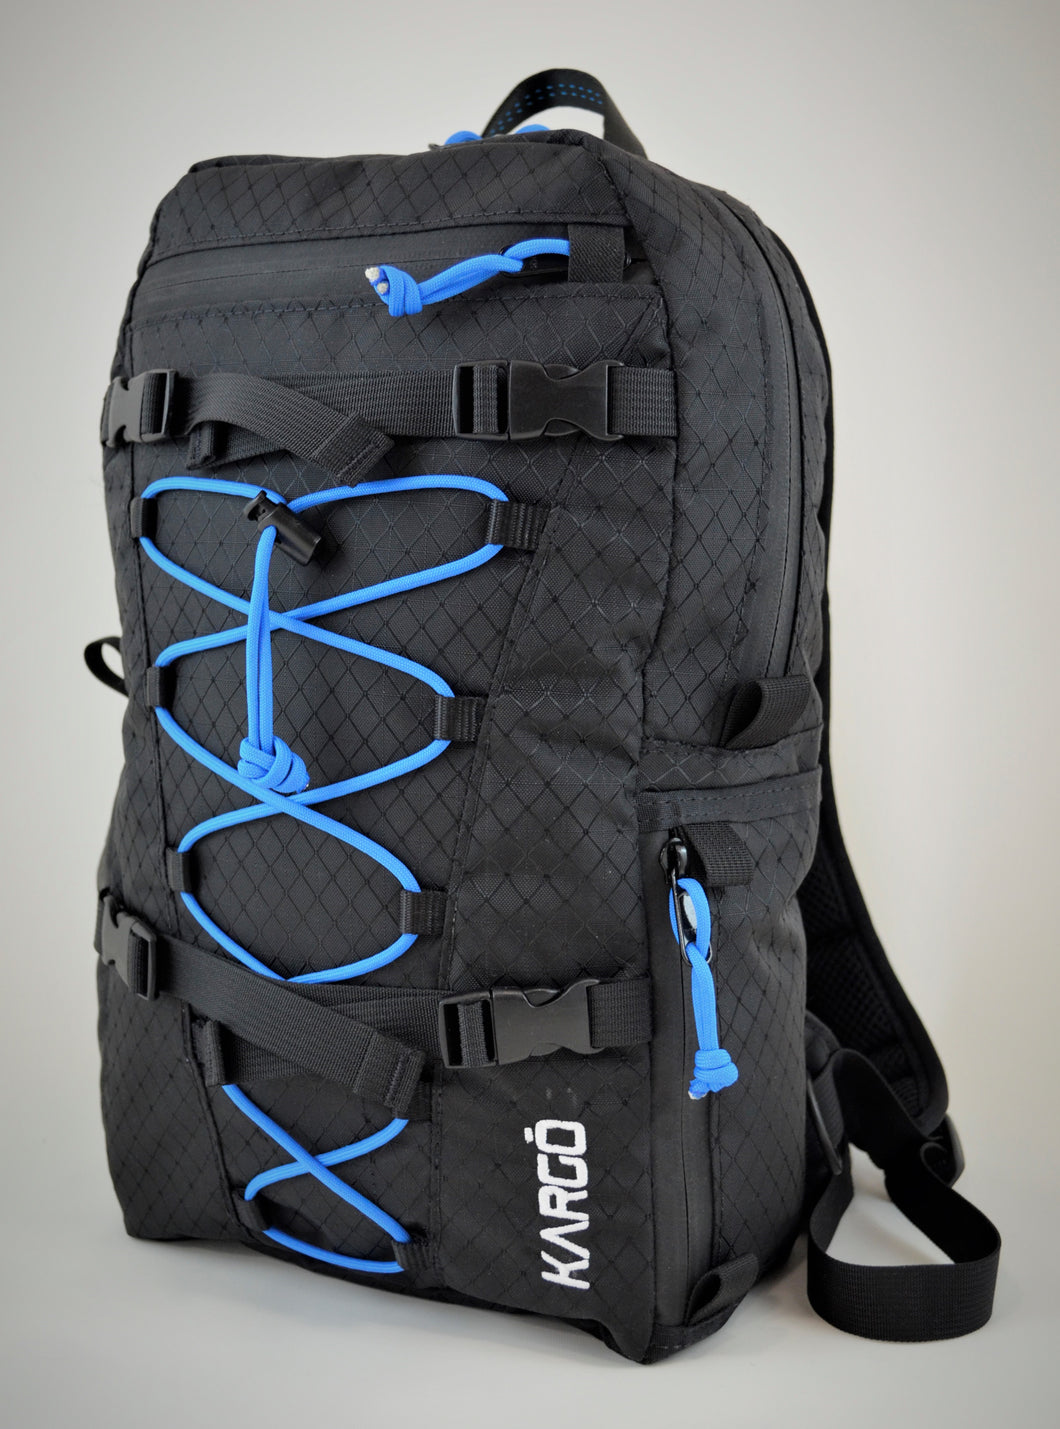 Rumbo DayPack - Black w/ Blue Cord